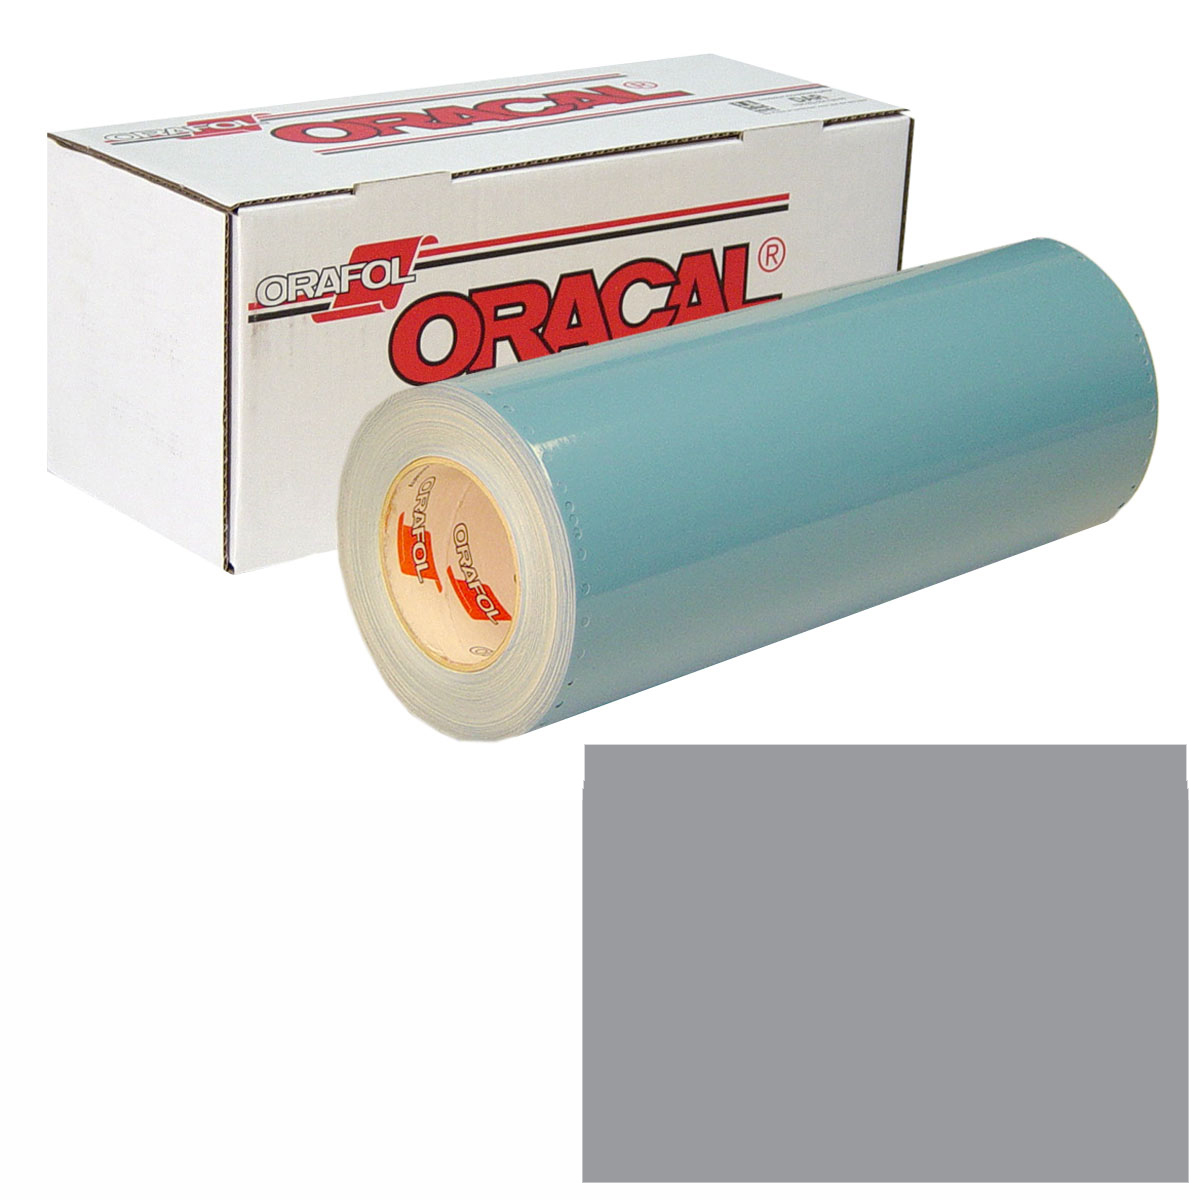 ORACAL 751 Unp 24In X 50Yd 074 Middle Grey